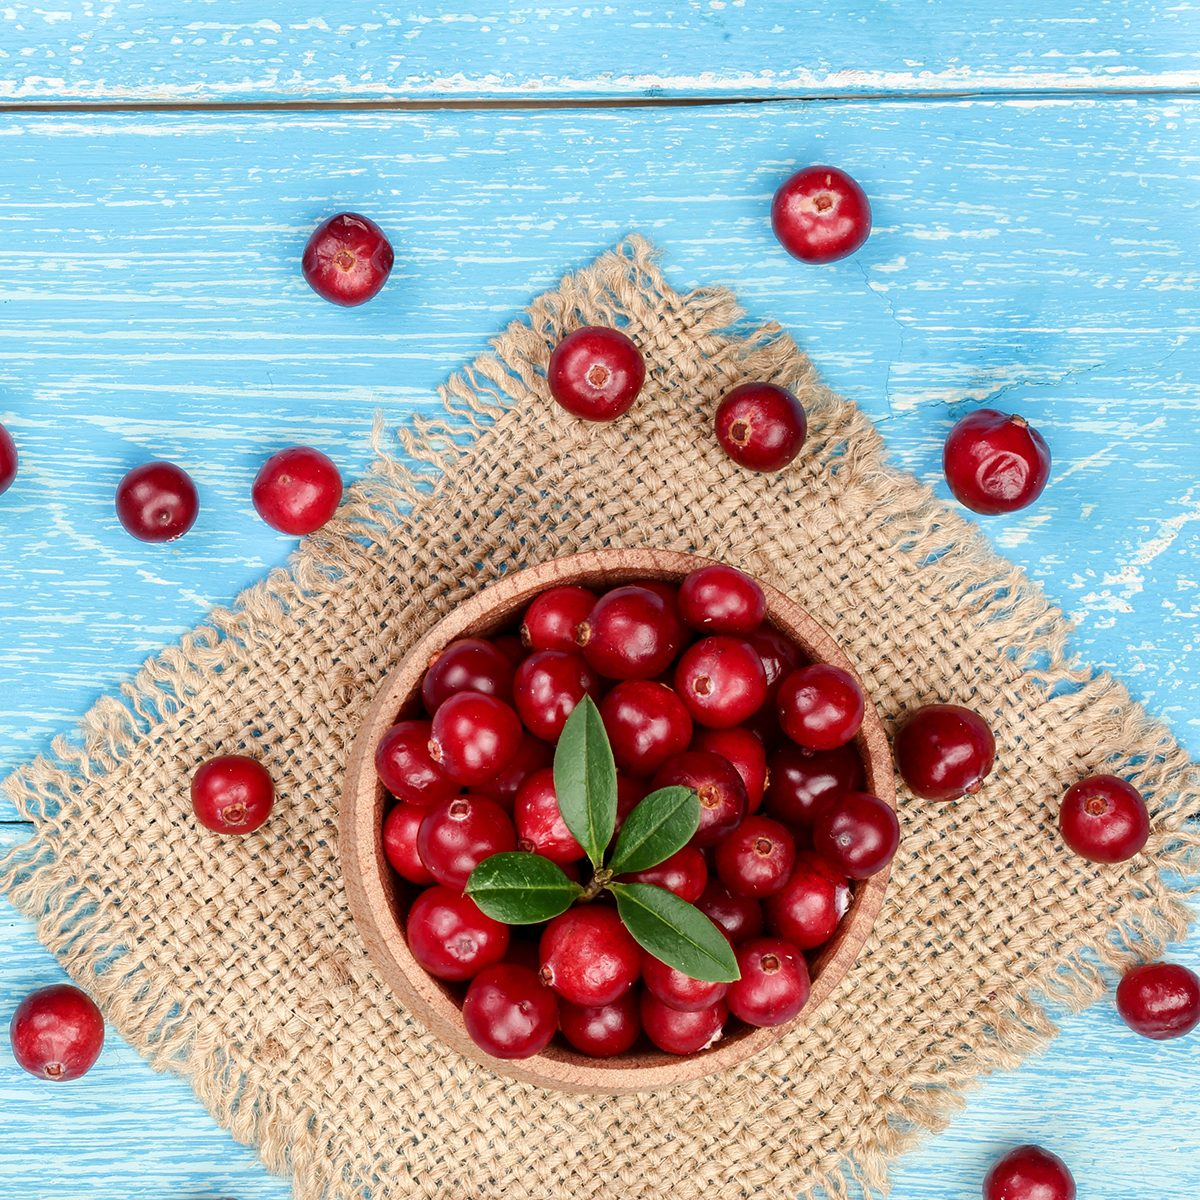 Cranberry with leaf in bowl on blue wooden background